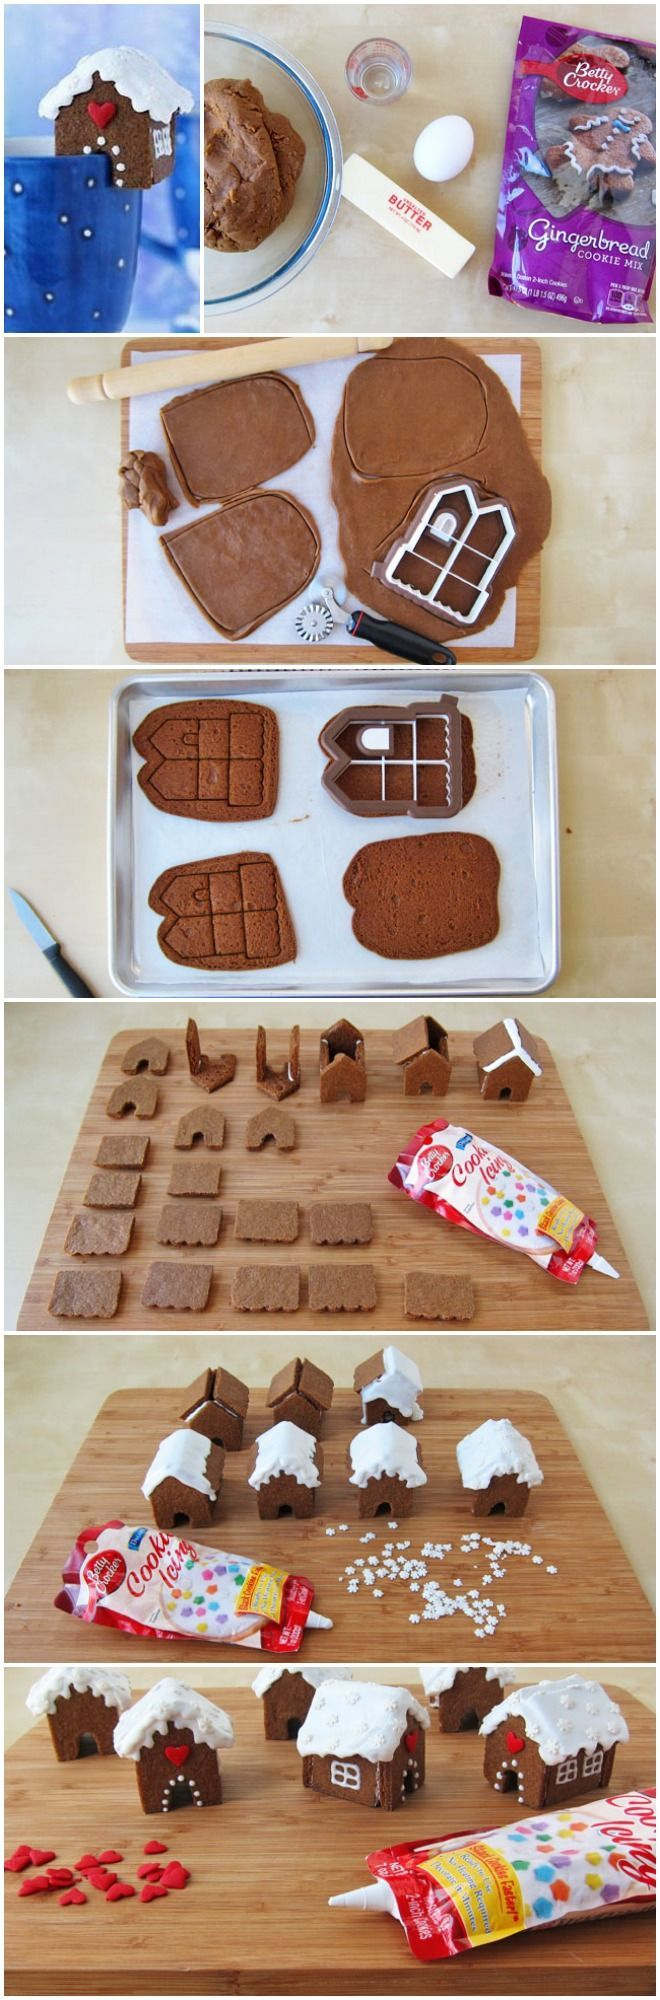 Mini Gingerbread Houses!  Love the all in one cookie cutter!: